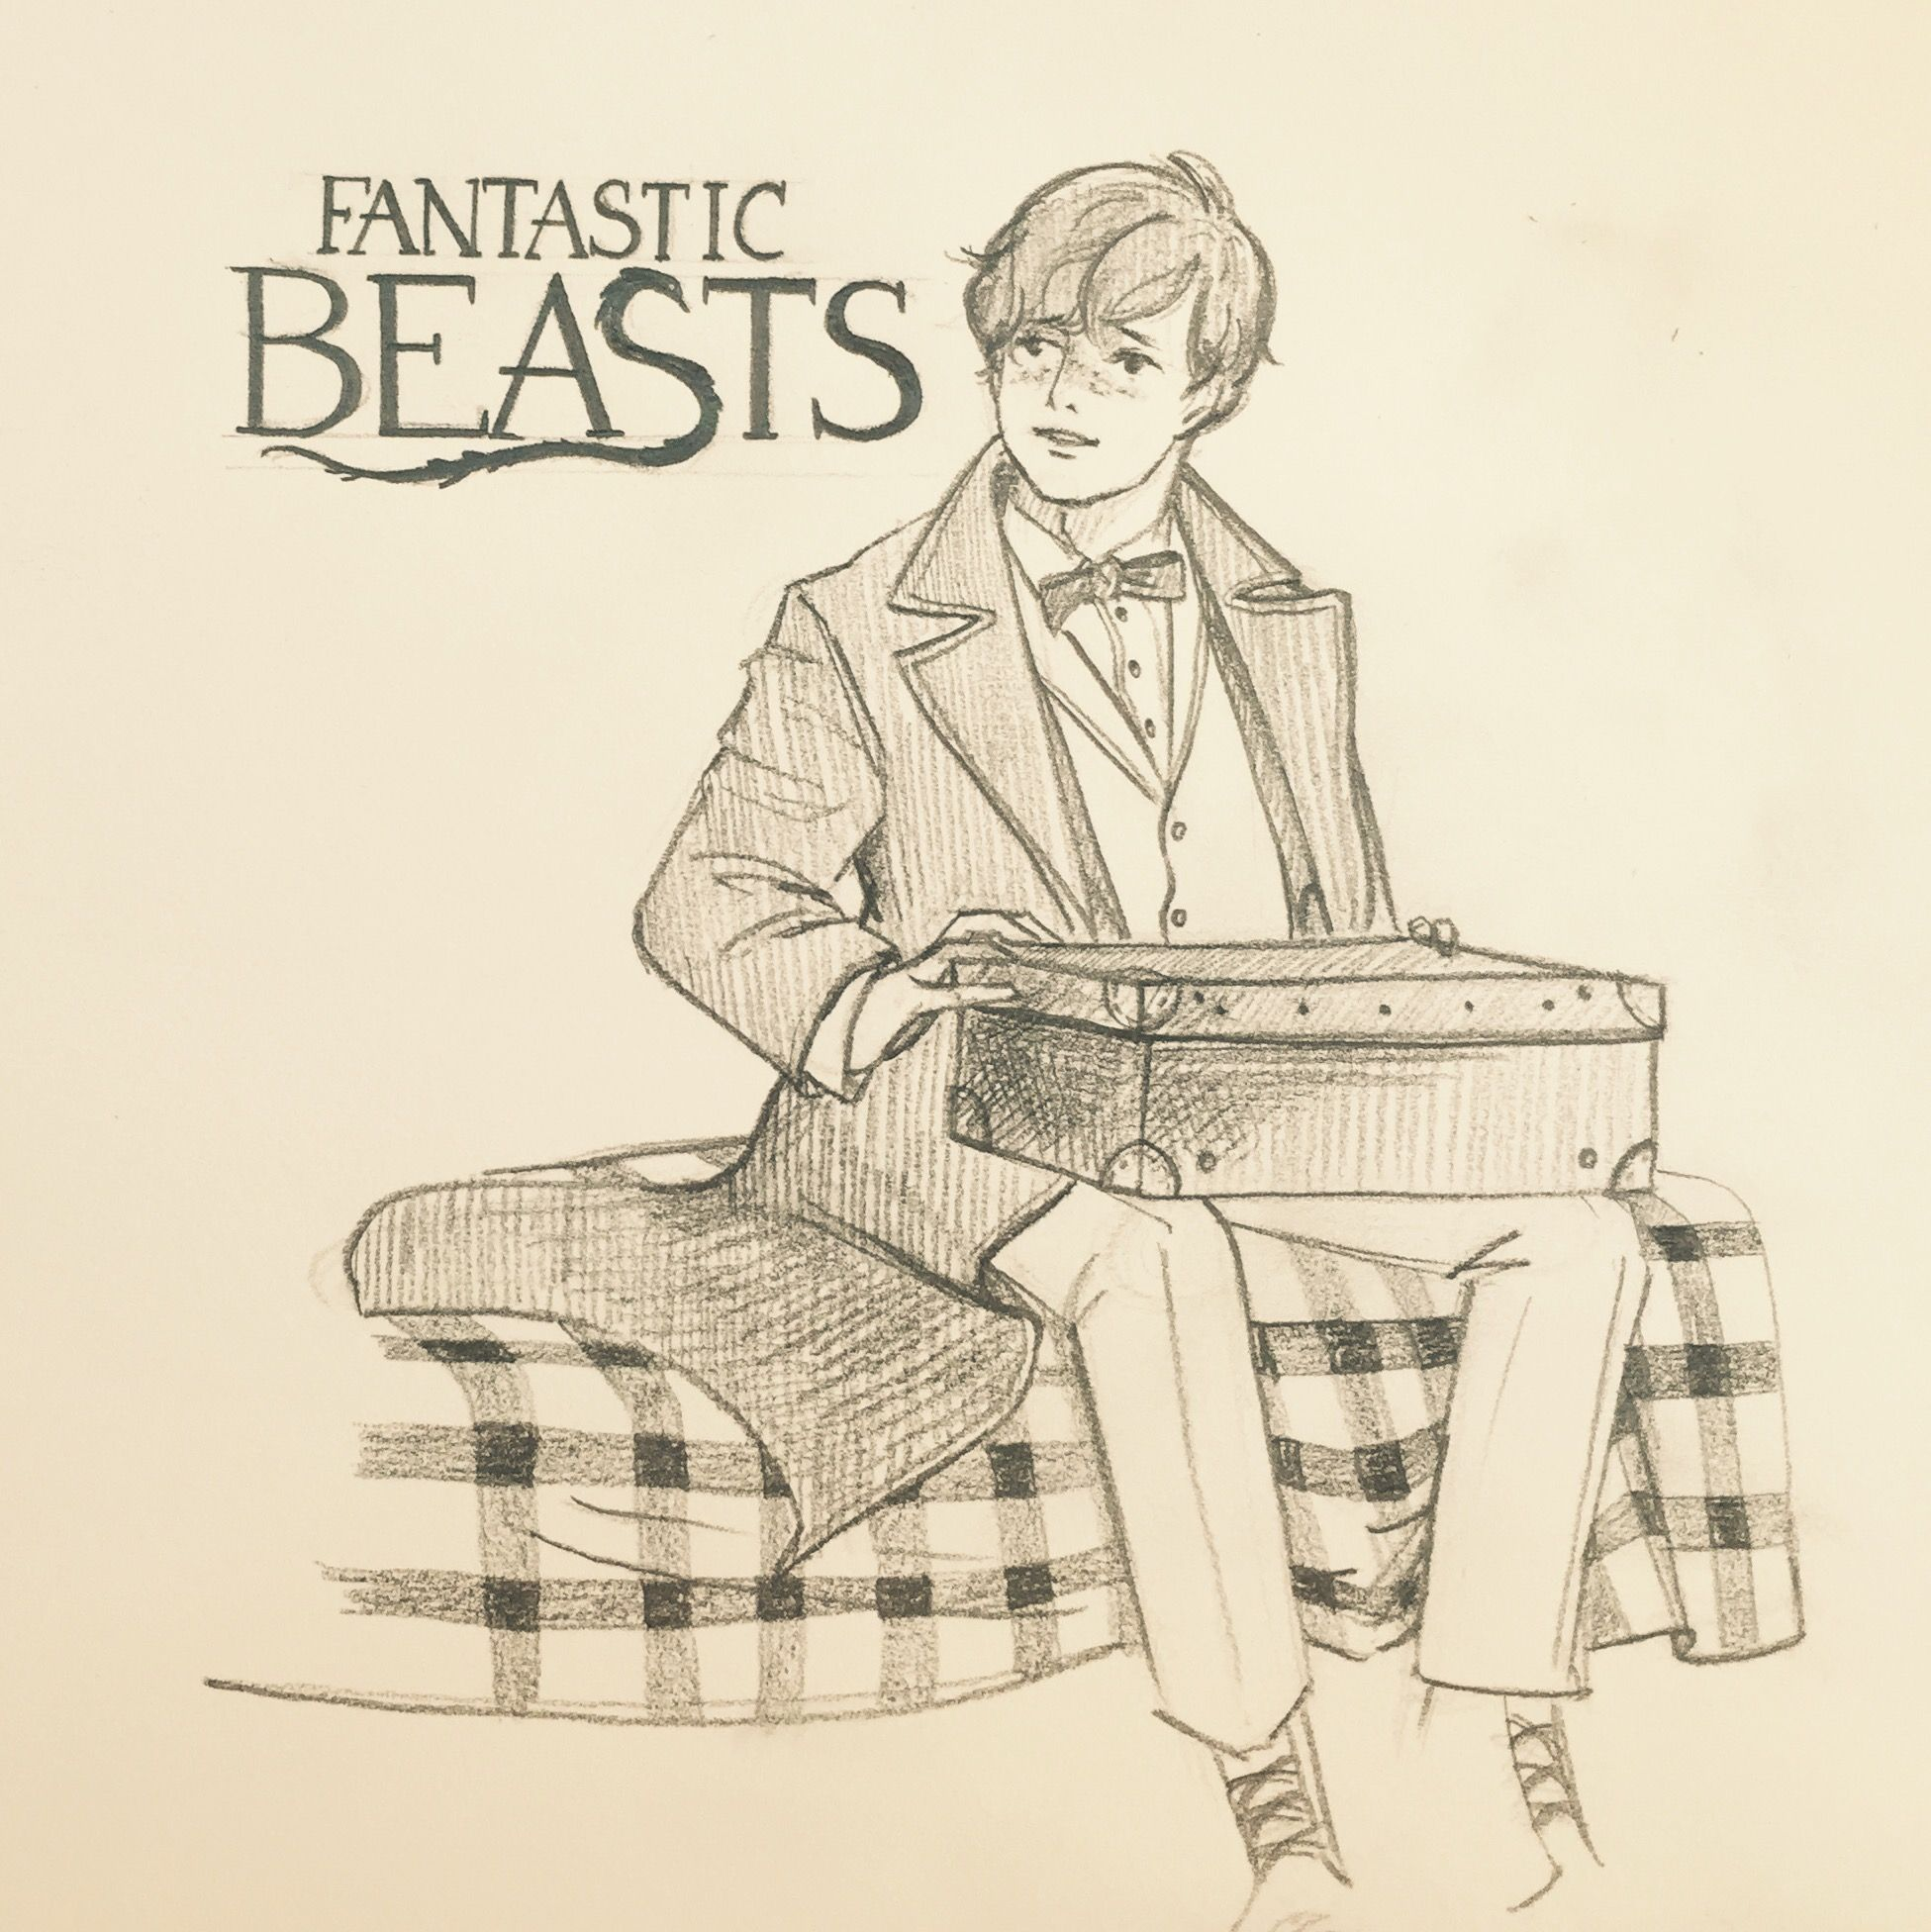 Fantastic Beasts And Where To Find Them Pencil Drawing